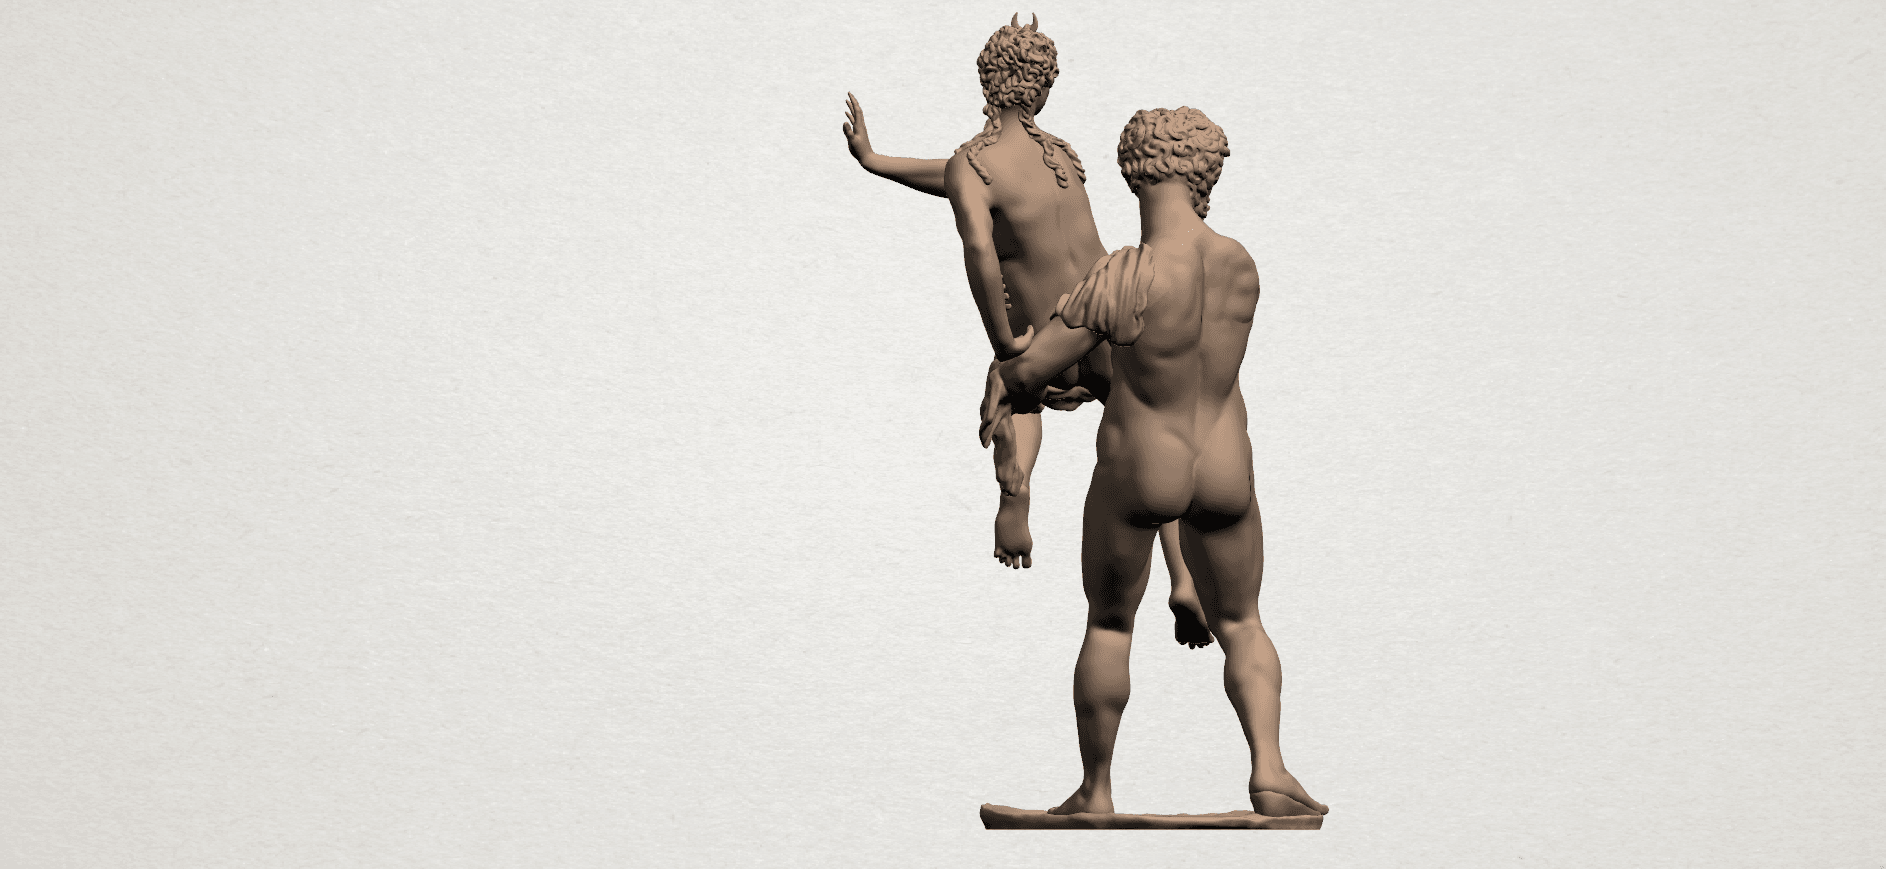 Naked Couple (iv) A04.png Download free STL file Naked Couple 04 • 3D printable model, GeorgesNikkei